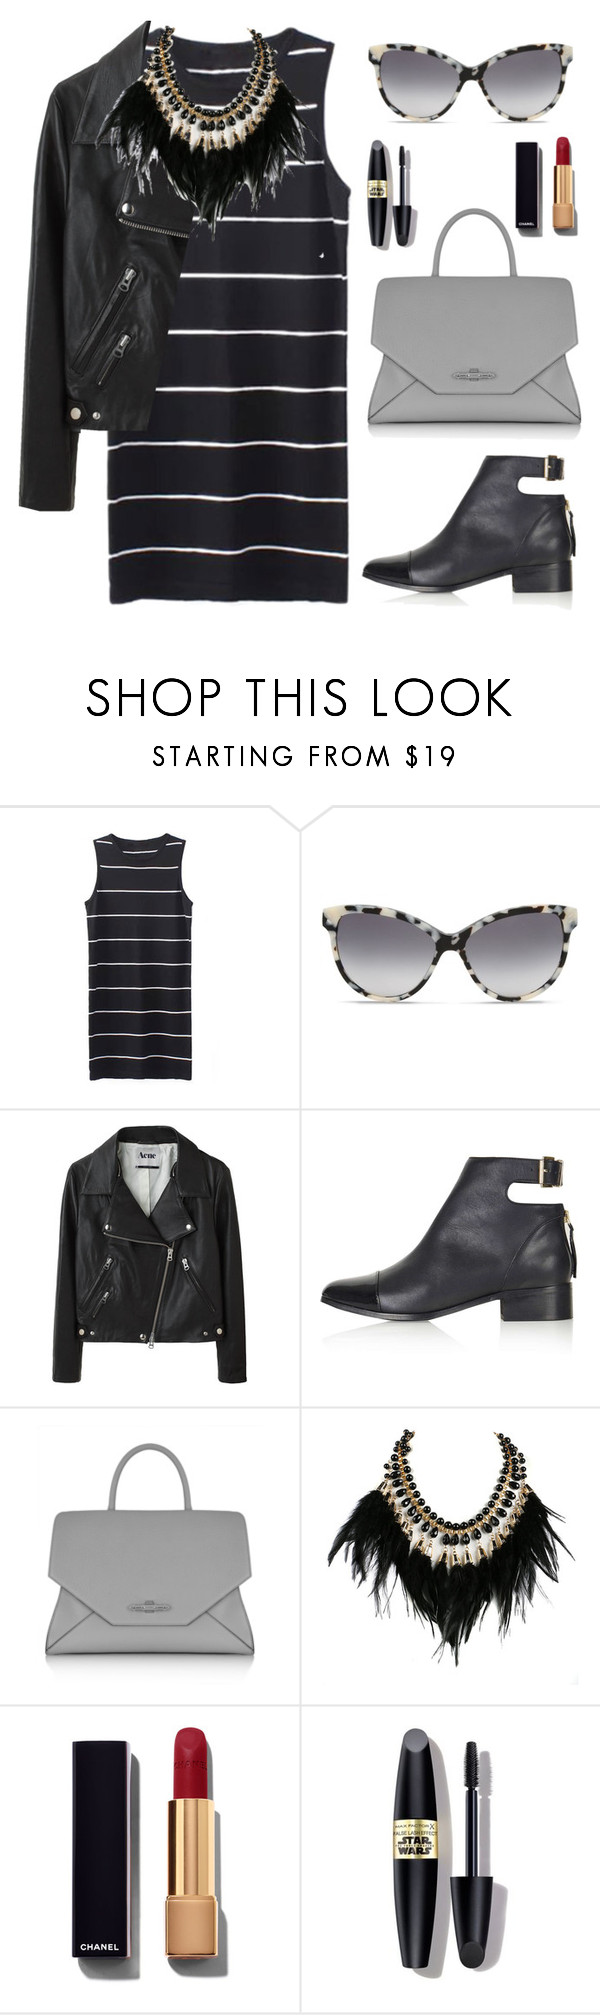 """""""Untitled #1751"""" by lauraafreedom ❤ liked on Polyvore featuring STELLA McCARTNEY, Acne Studios, Topshop, Givenchy, WithChic, Chanel and Max Factor"""